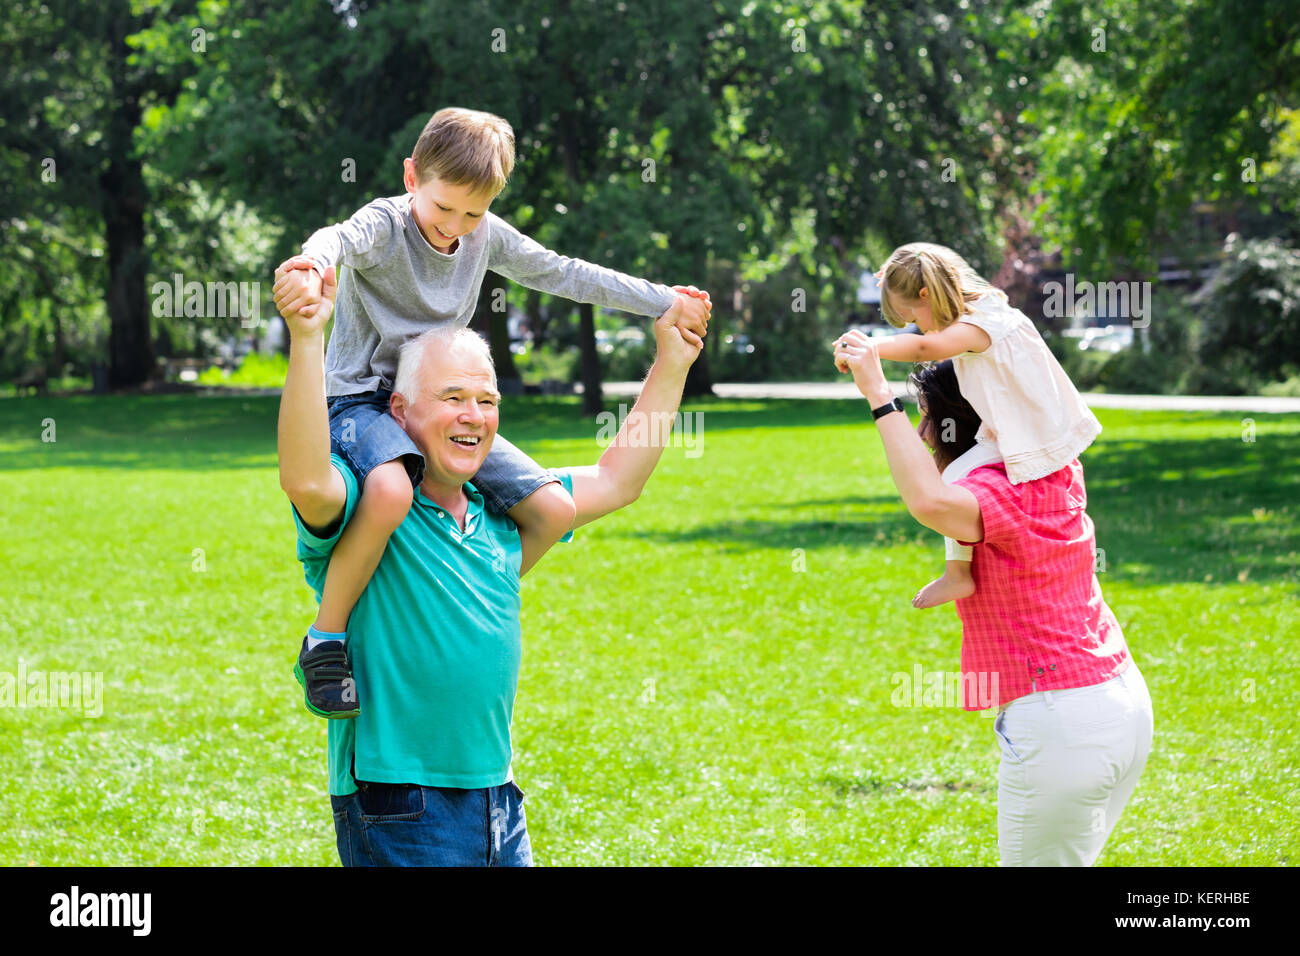 Happy Family Having Fun Doing Piggyback Ride With Kids In Park - Stock Image